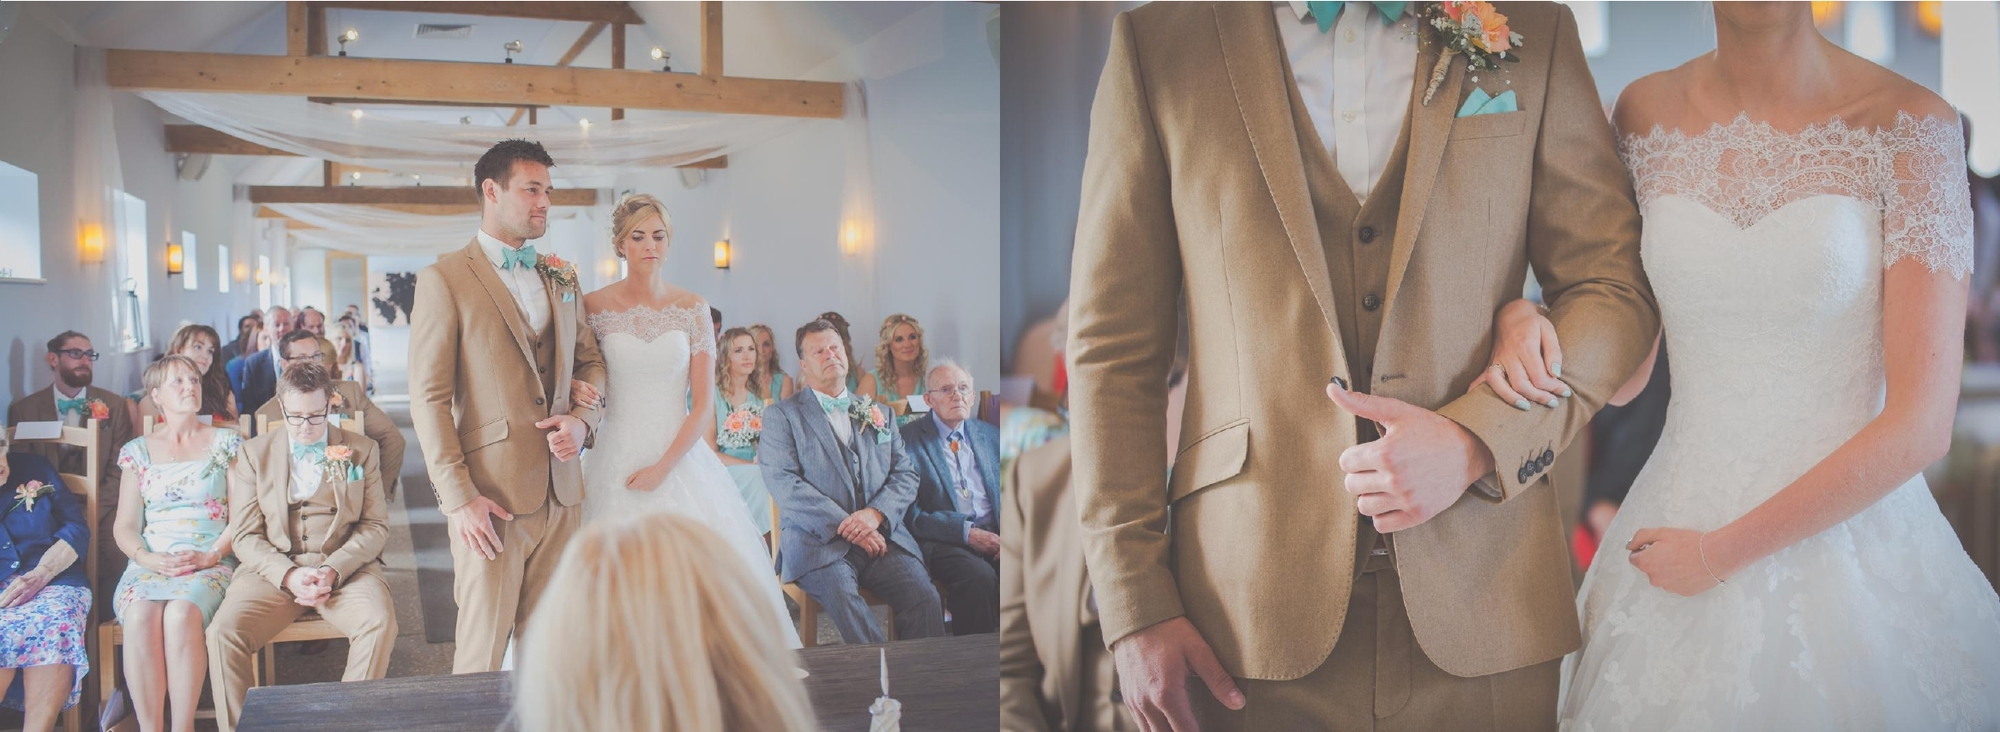 Southend Barns Wedding Photographers Justine Claire Chichester 8 .jpg